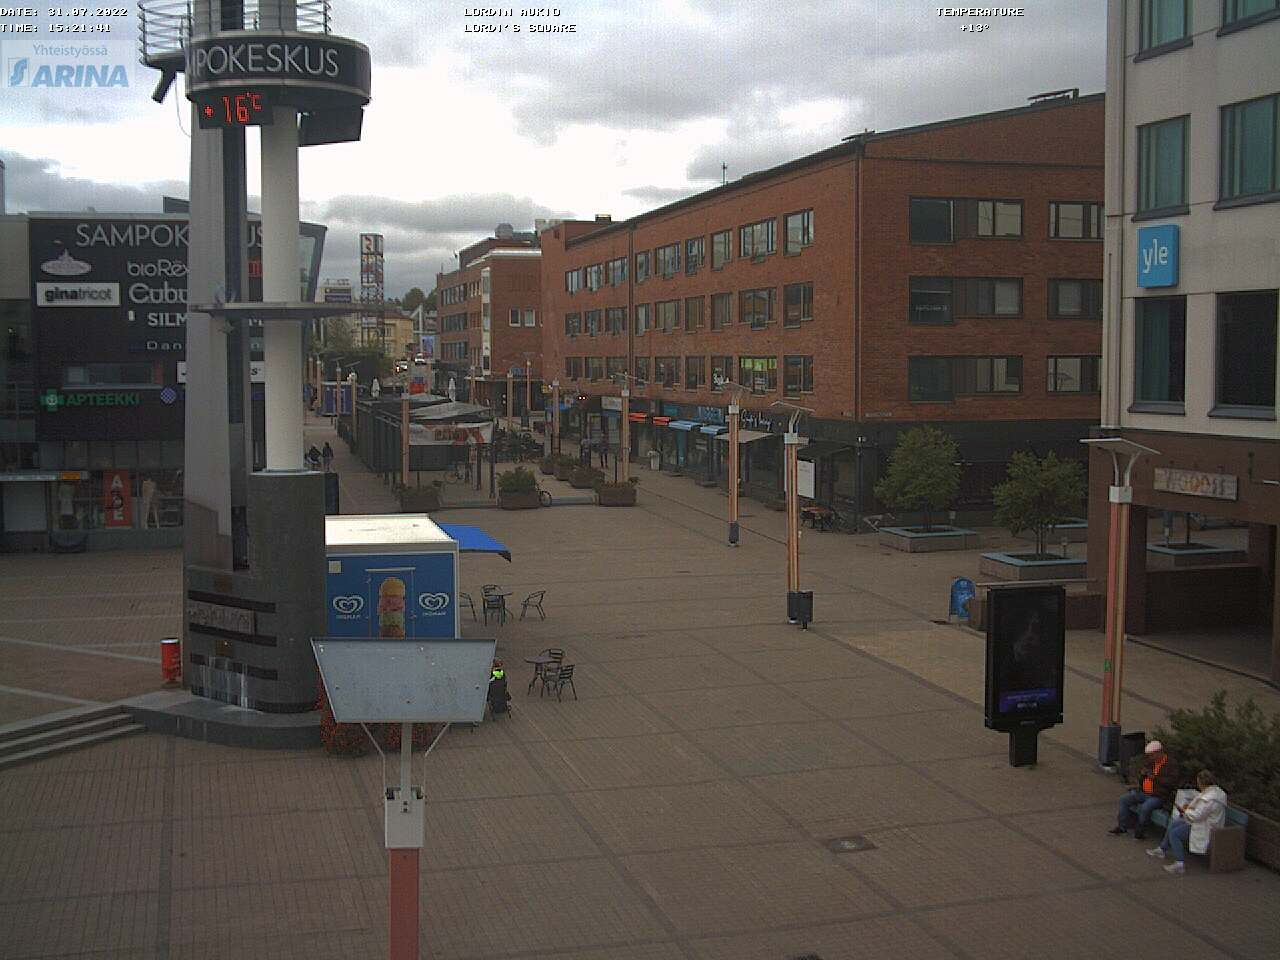 Webcam - Lordi aukio